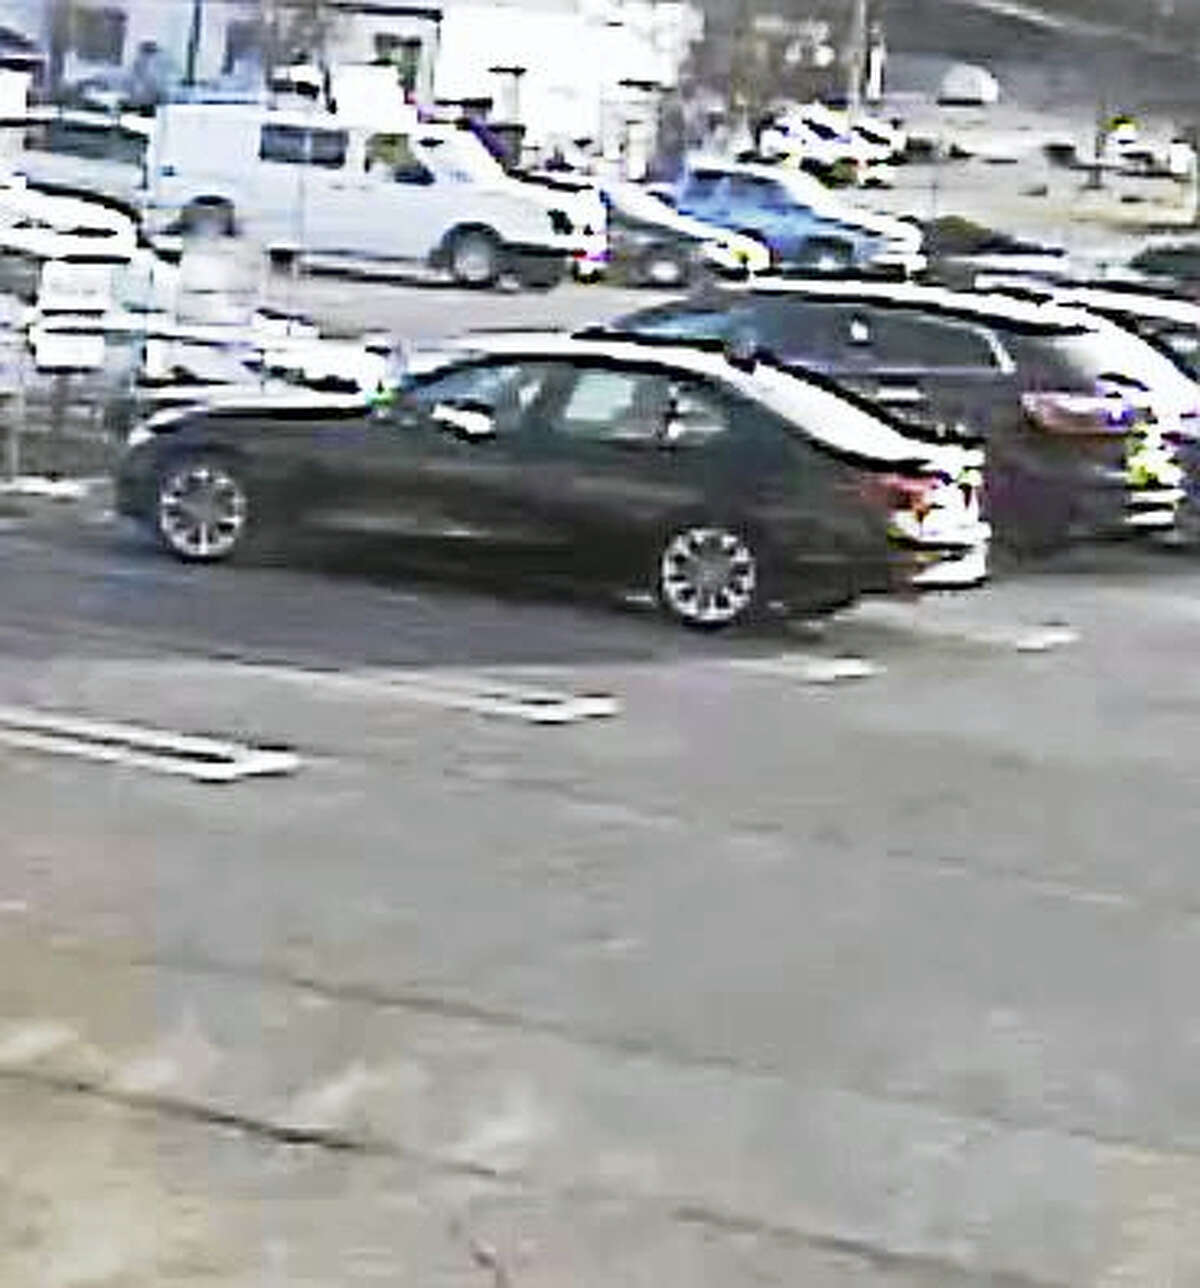 Police are looking for this black car driven by two men allegedly connected to a cloned credit card.